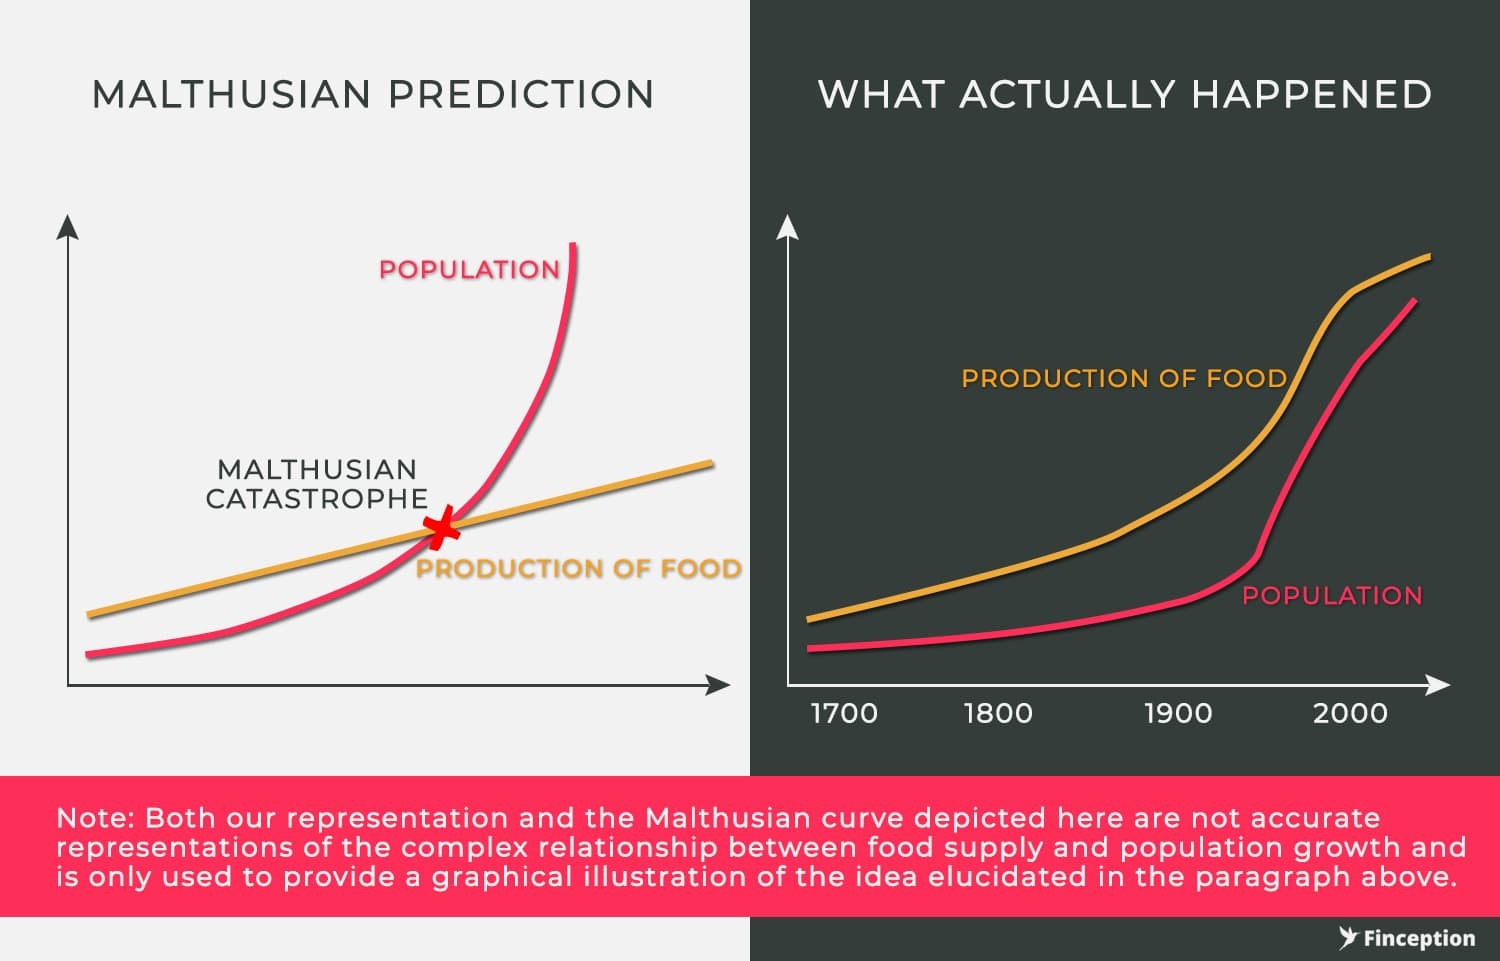 Malthusian Prediction